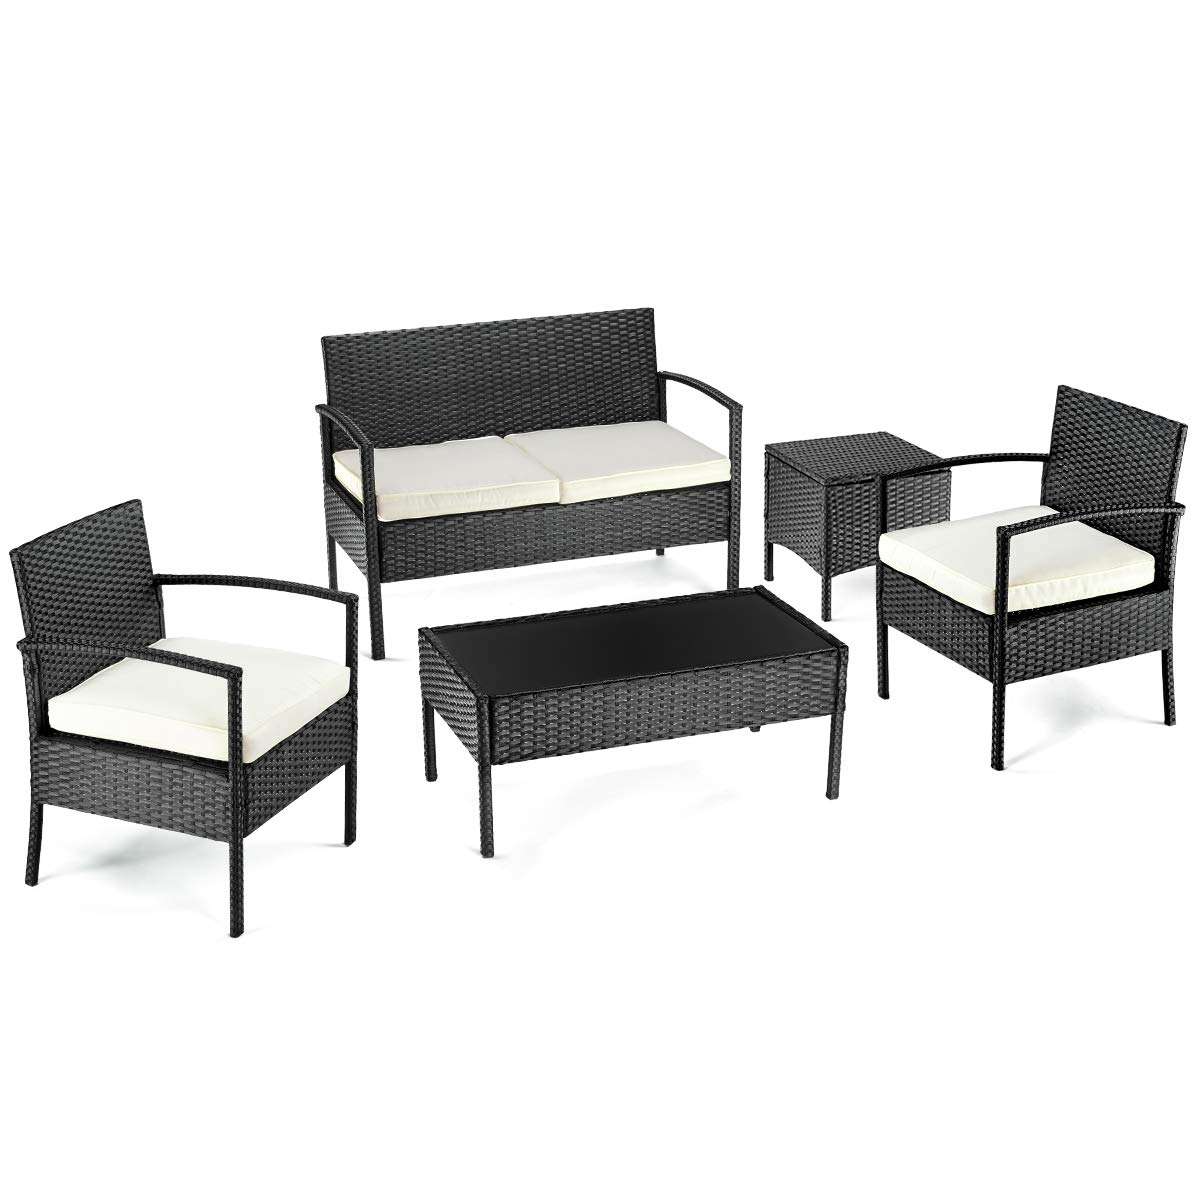 Pamapic 5 Pieces Outdoor Furniture Sets, All Weather PE Rattan Black Wicker Chair with Cushioned Seat and Two Coffee Table for Proch, Balcony, Patio, Backyard, Garden, 5 PCS